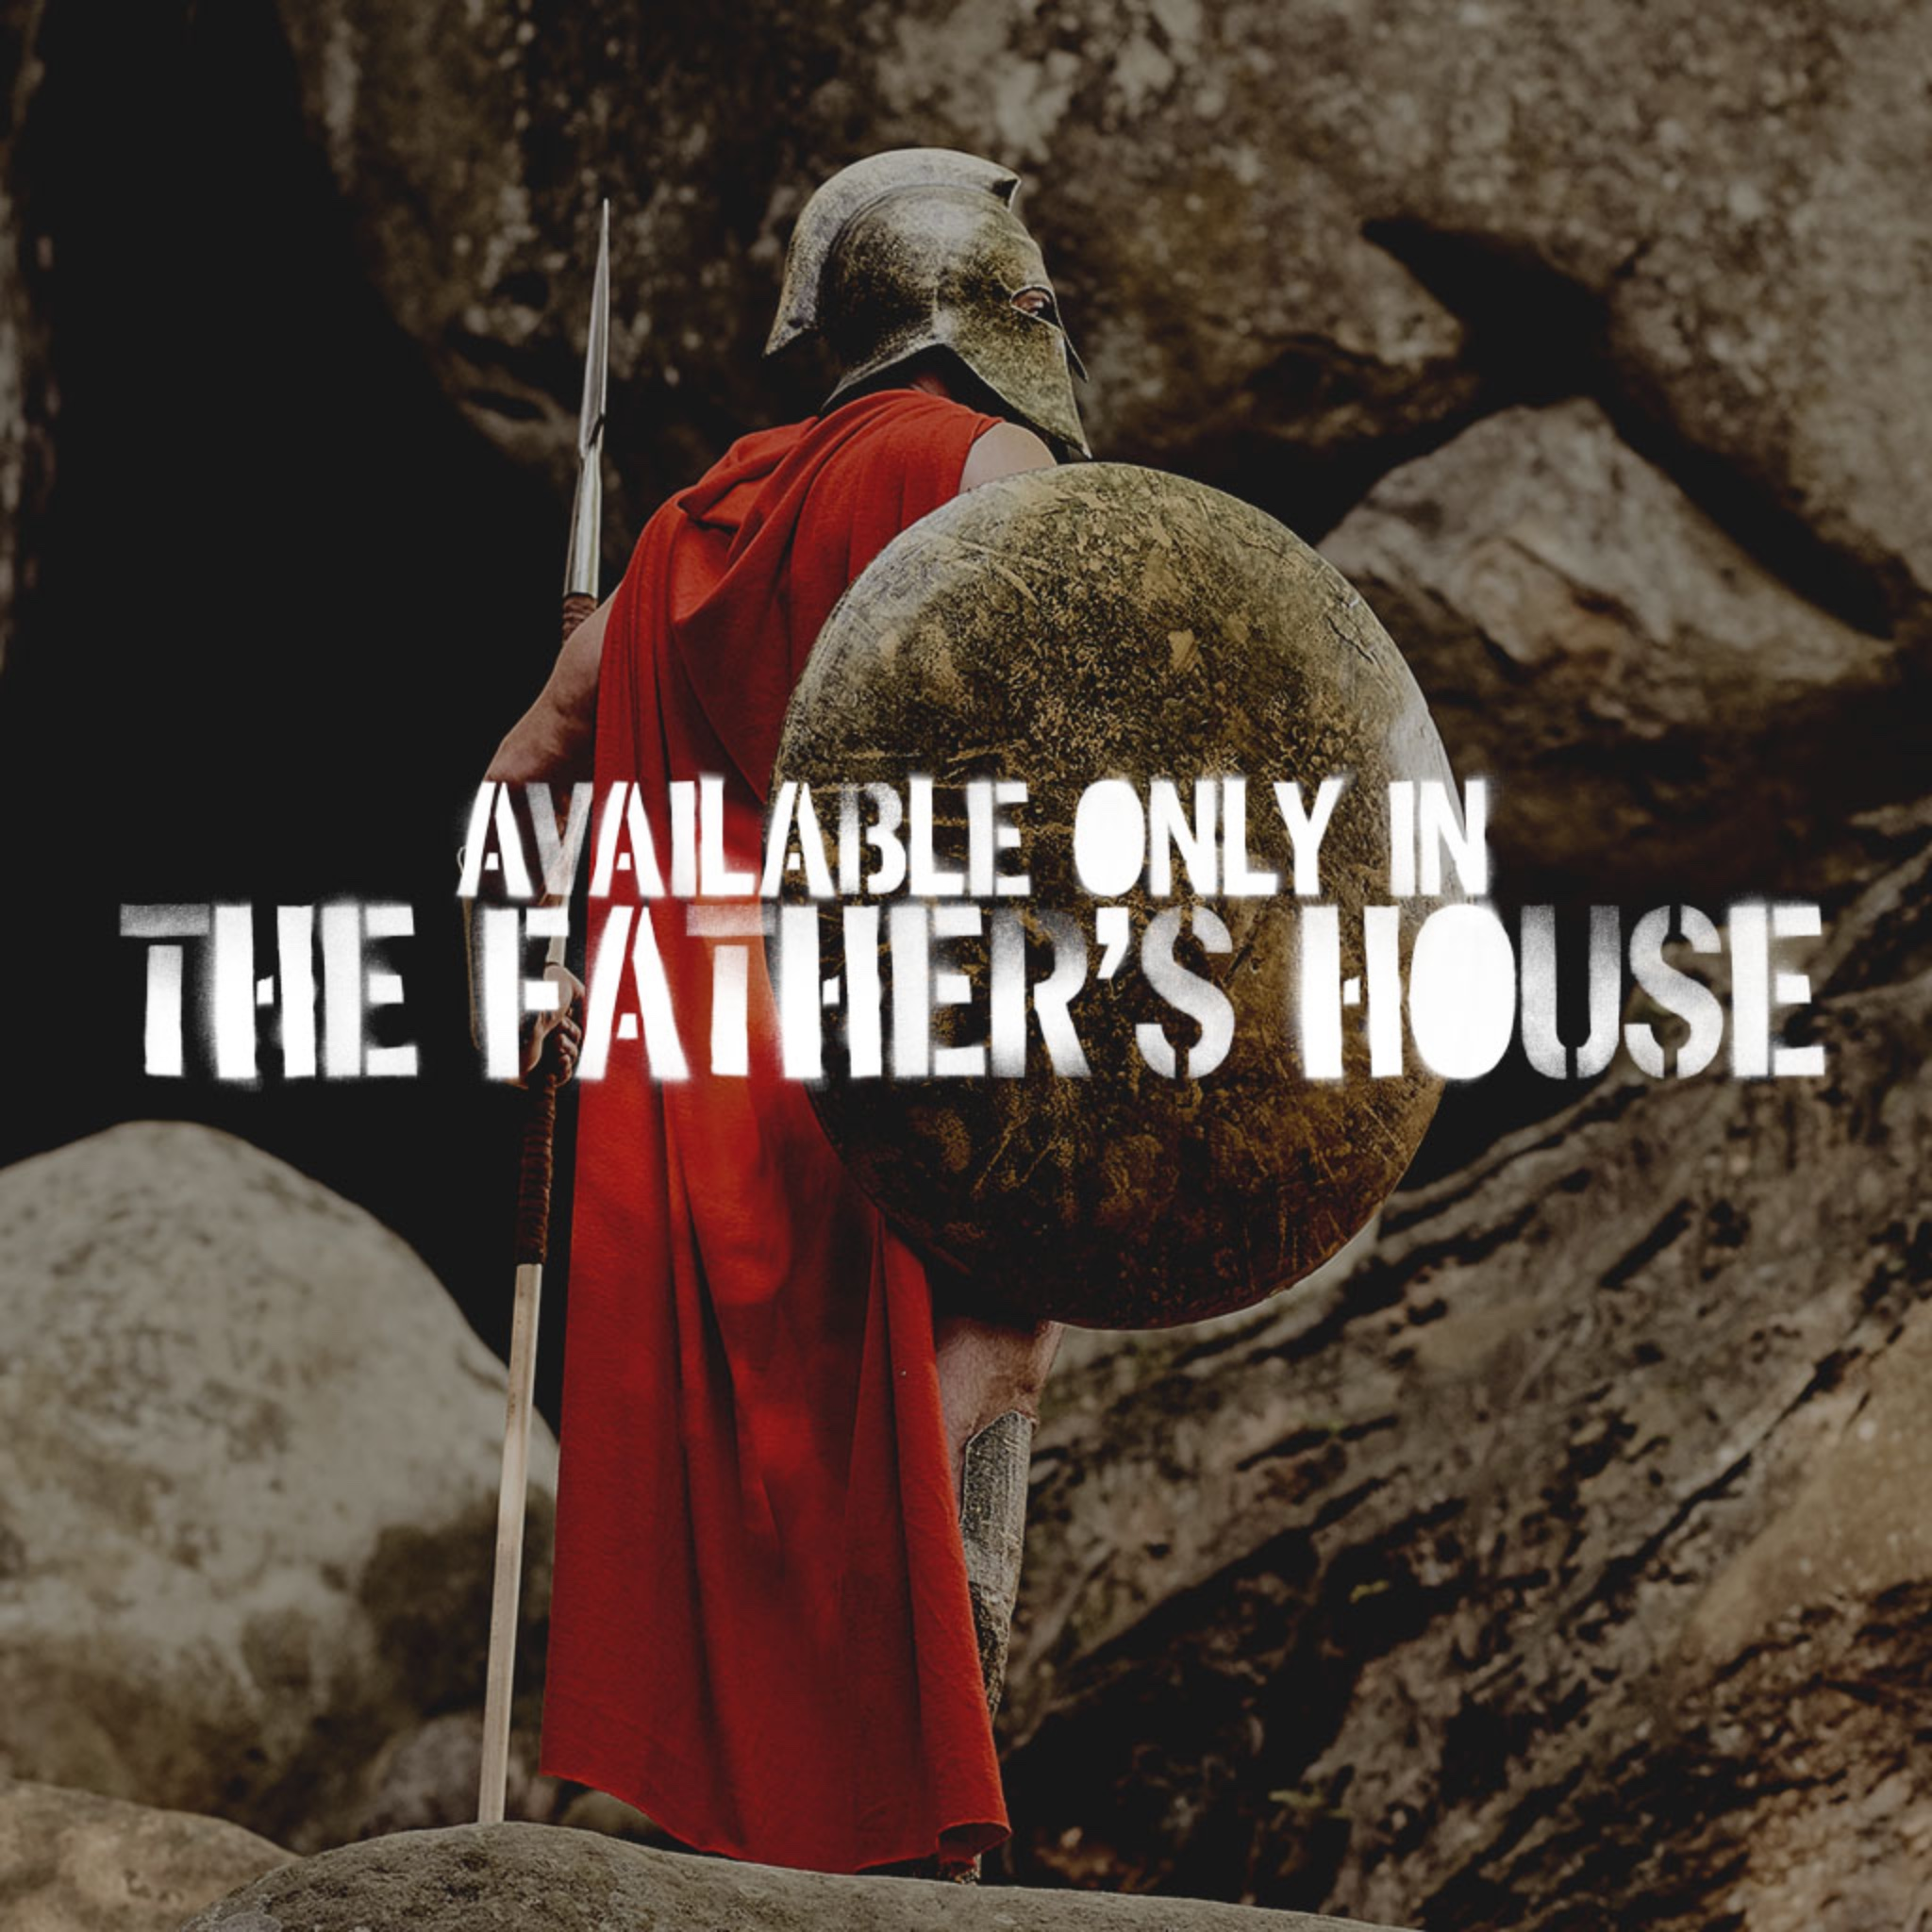 Available Only in the Father's House - Ps. Jurgen Matthesius